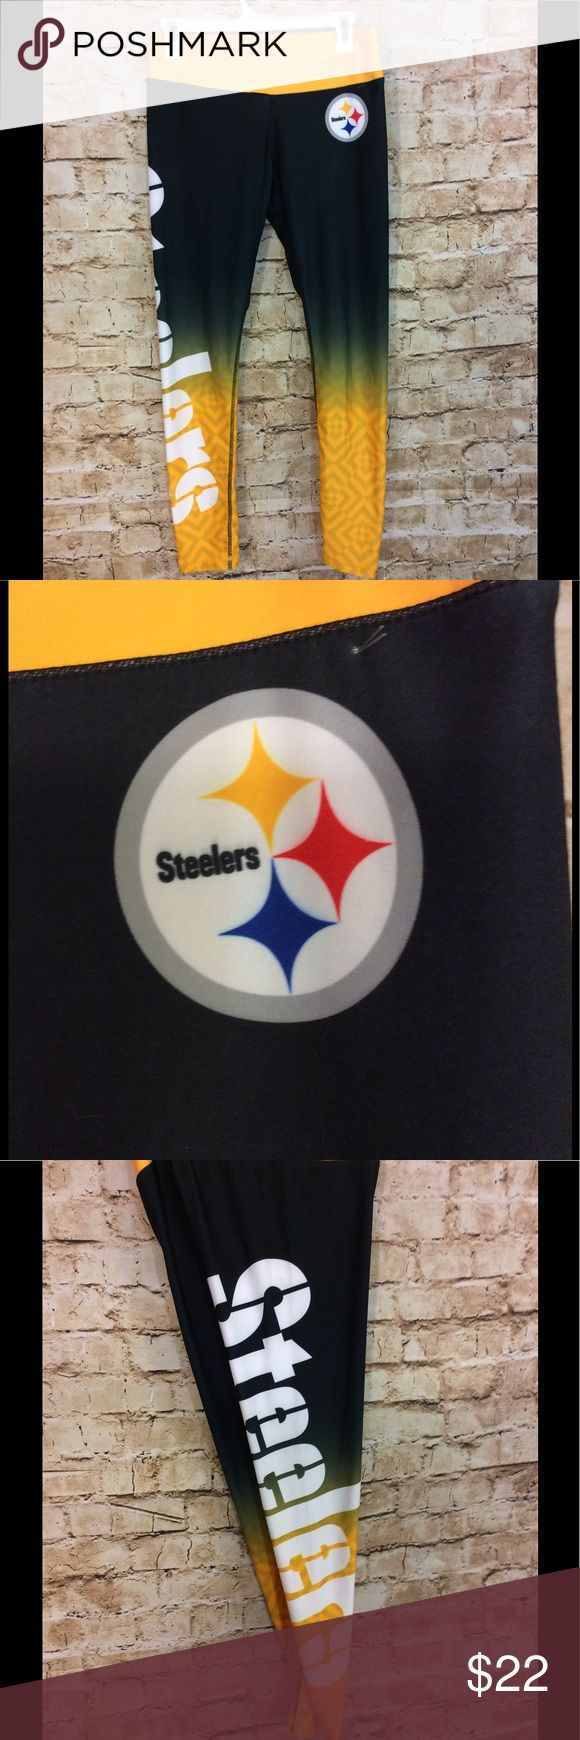 NFL team apparel Steelers jogger pants size medium Very gently used NFL team apparel size medium Steelers jogger pants  If you're a Steelers fan women are the pants for you Inseam is 28 inches Waist is 15 inches stretches of the 21 inches They don't look like they've ever been worn NFL Team apparel Pants Track Pants & Joggers